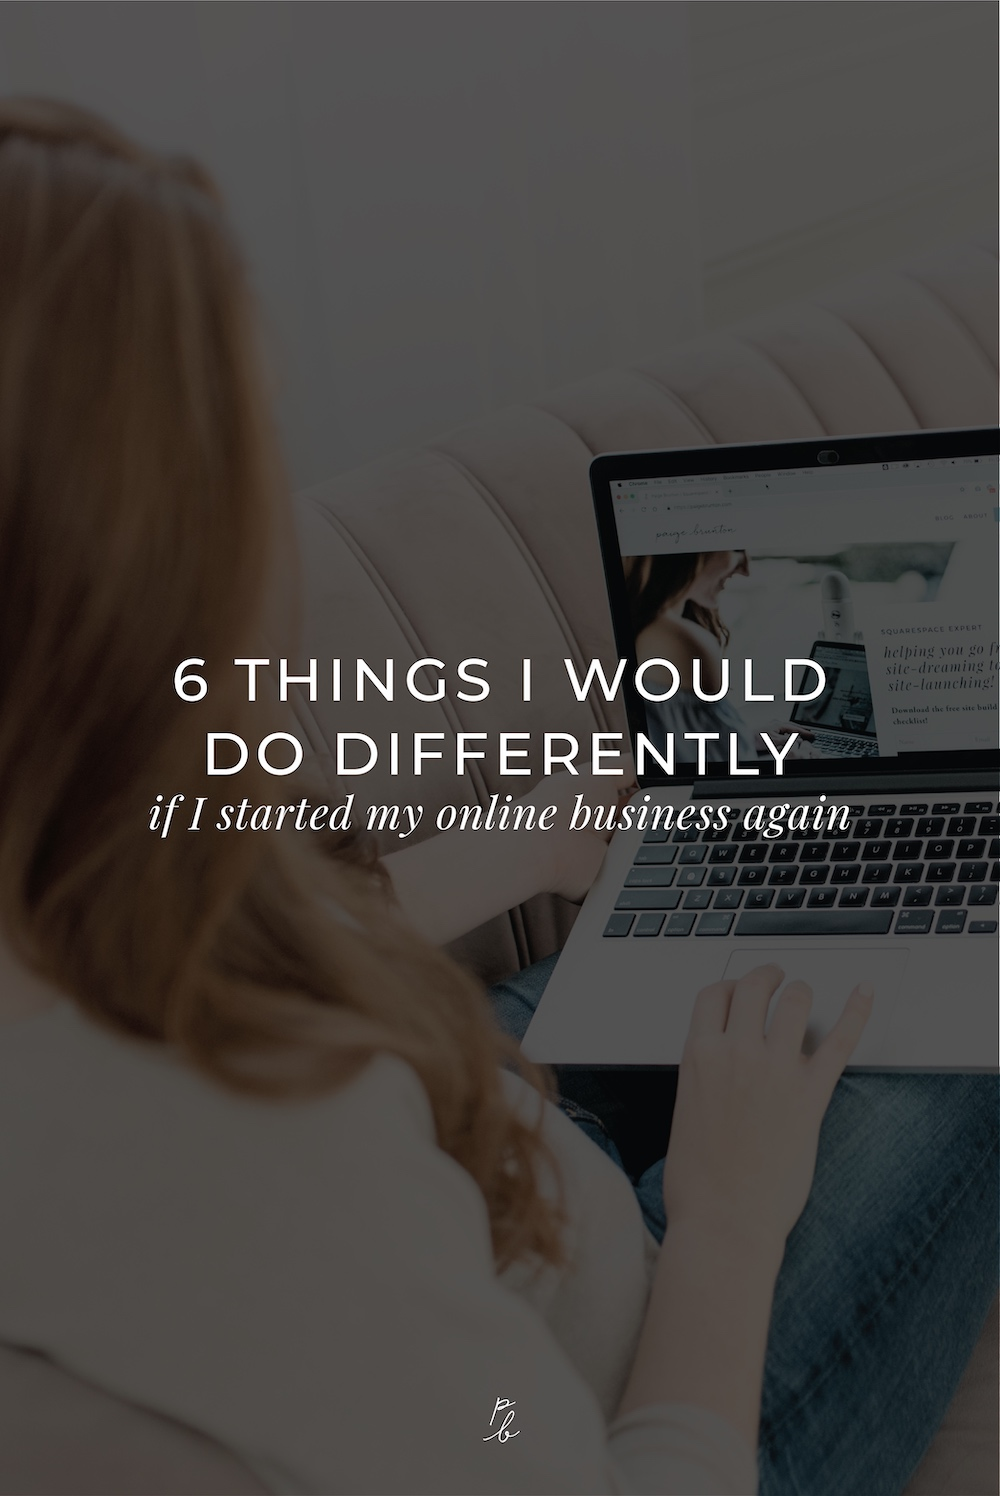 2-6 things I would do differently if I started my online business again.jpg